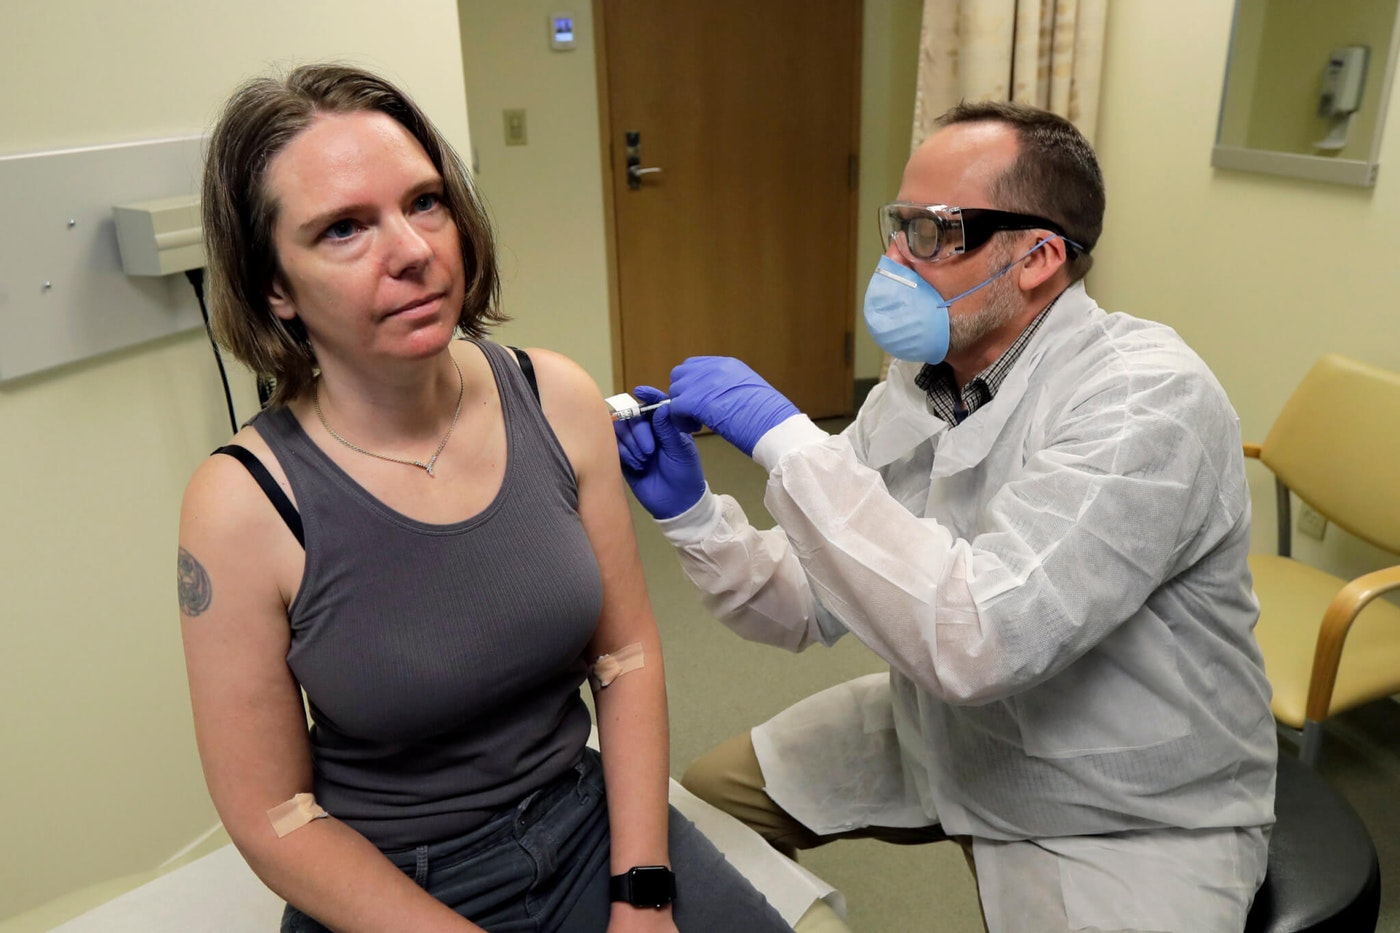 A pharmacist gives Jennifer Haller, left, the first shot in the first-stage safety study clinical trial of a potential vaccine for COVID-19. (AP Photo/Ted S. Warren)